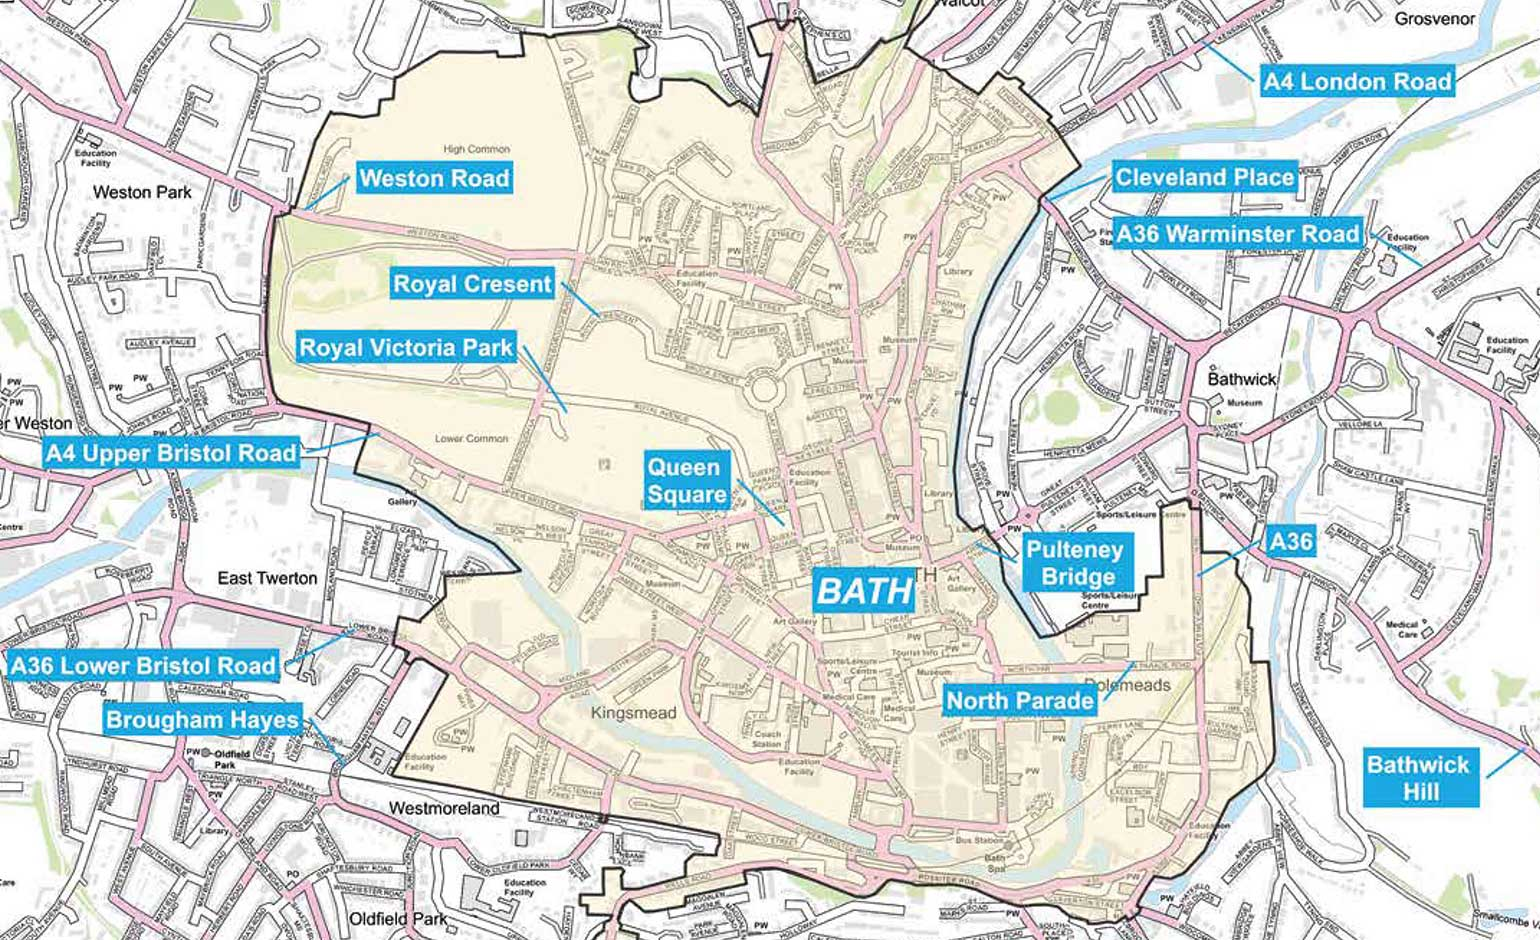 Consultation launches on potential £9 charge to drive into the centre of Bath